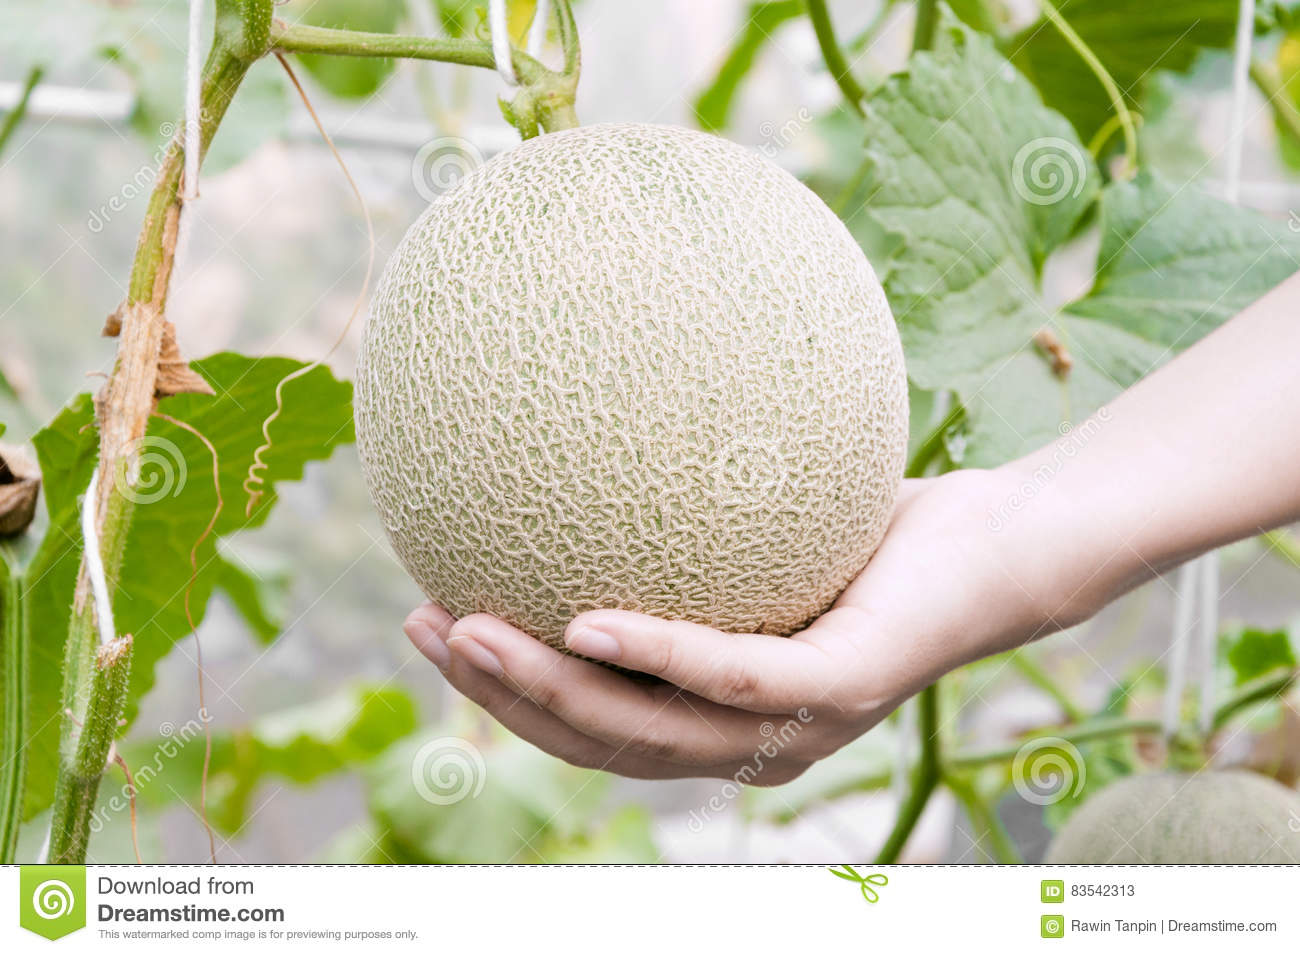 Melon In Hand Cantaloupe Melons Growing In A Greenhouse Supported By String Melon Nets Stock Image Image Of Gardeners Group 83542313 ✓ free for commercial use ✓ high quality images. dreamstime com